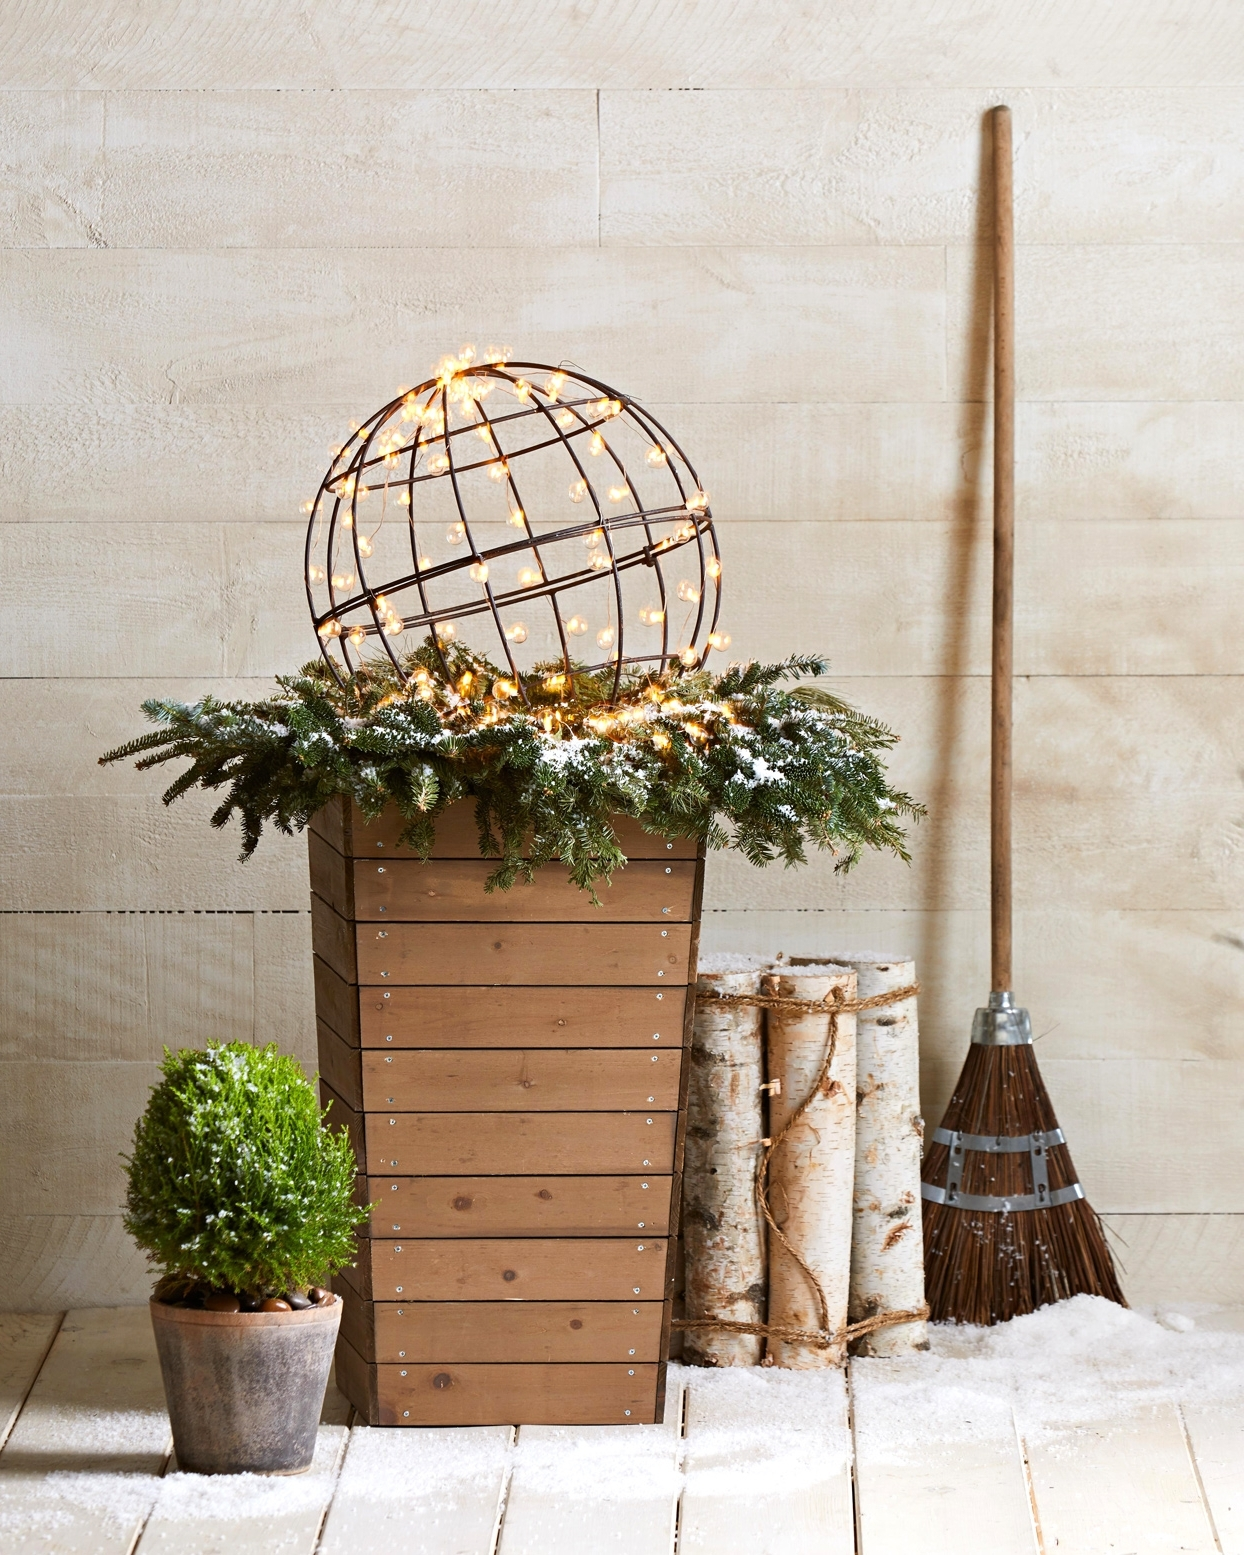 19 Diy Winter Decorations You Can Keep Up After The Holidays